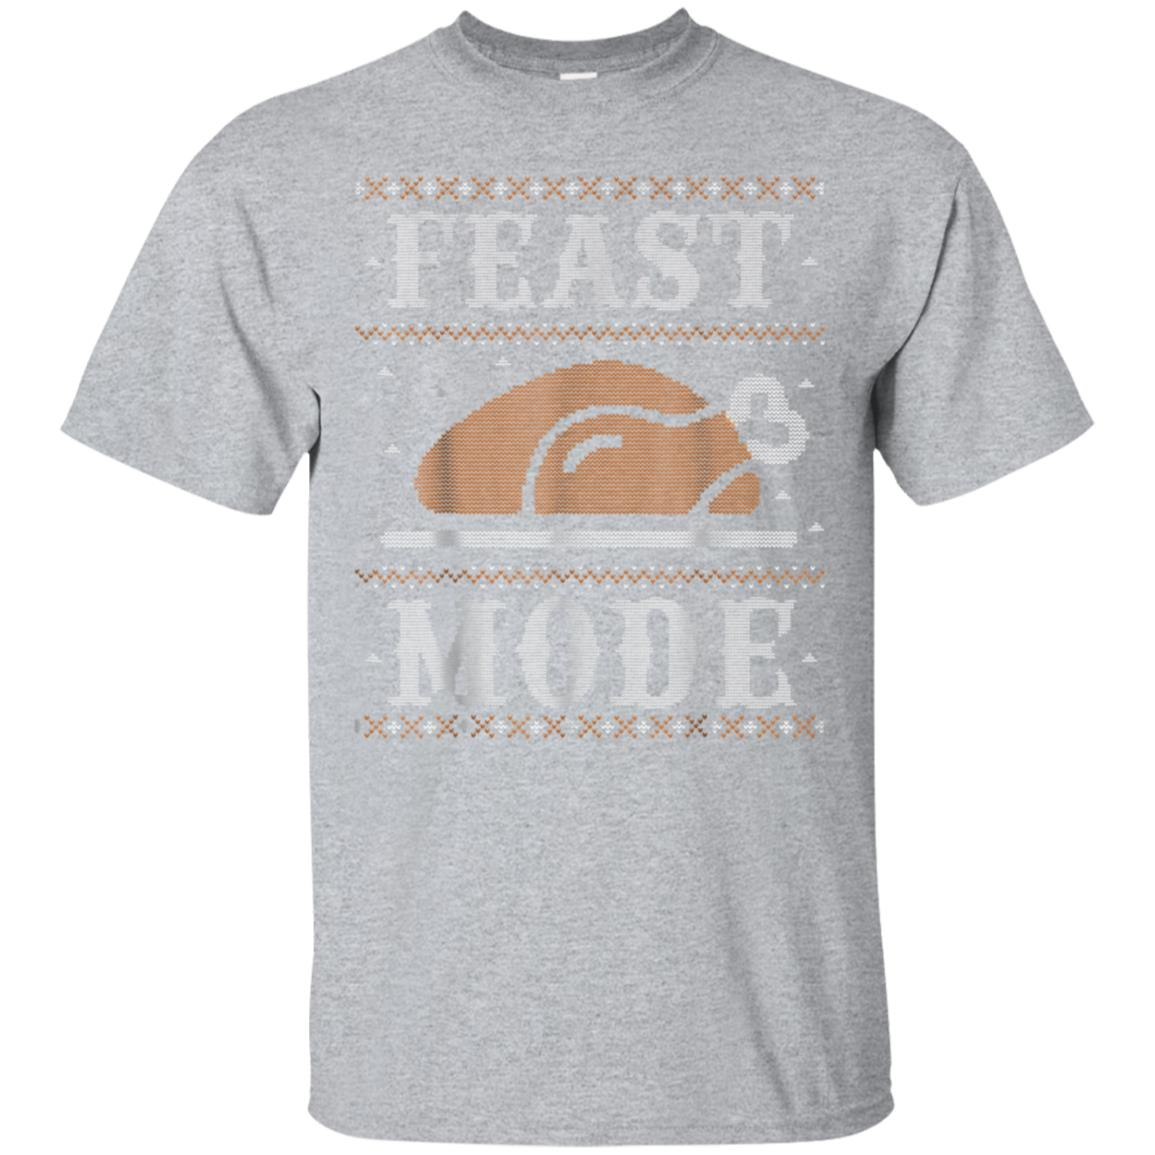 Funny Ugly Thanksgiving Sweater Shirt Feast Mode Tshirt 99promocode